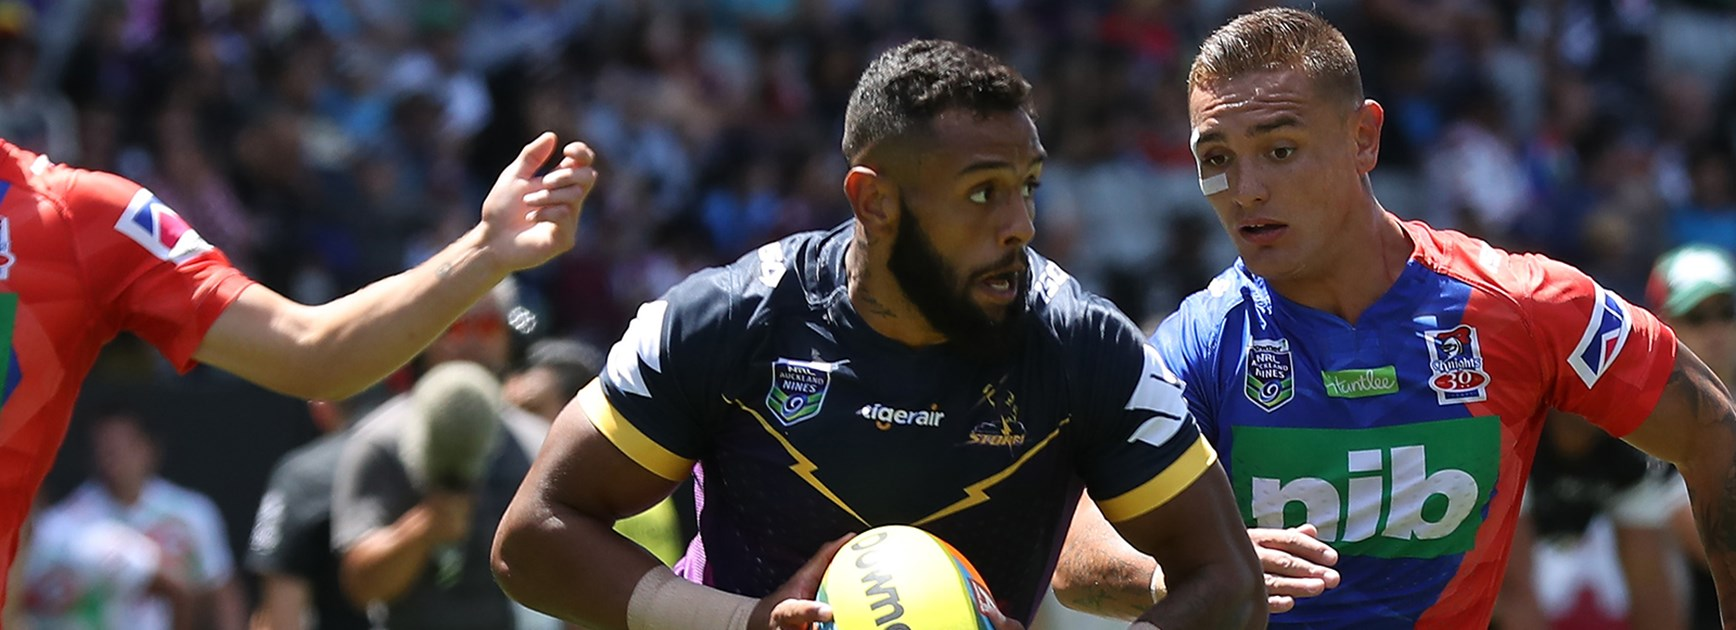 Storm winger Josh Addo-Carr in action against the Knights at the 2017 Auckland Nines.